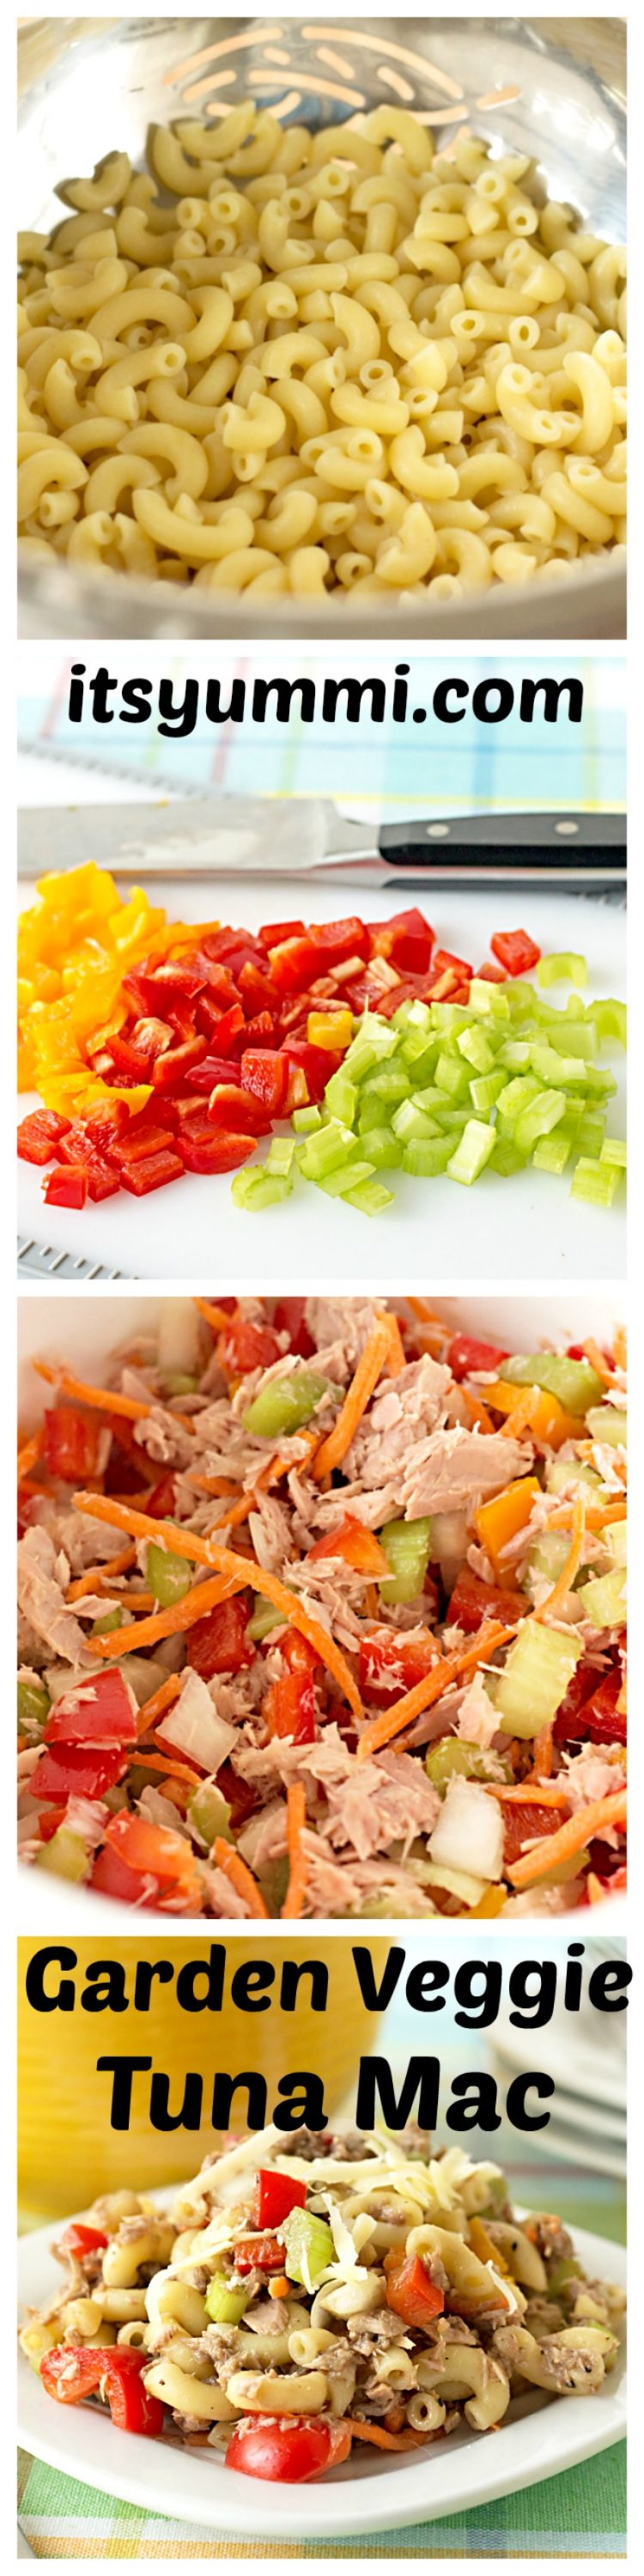 This healthy garden veggie tuna mac salad is loaded with crisp vegetables, lower carb pasta, tuna, and a balsamic vinaigrette (NO MAYO).